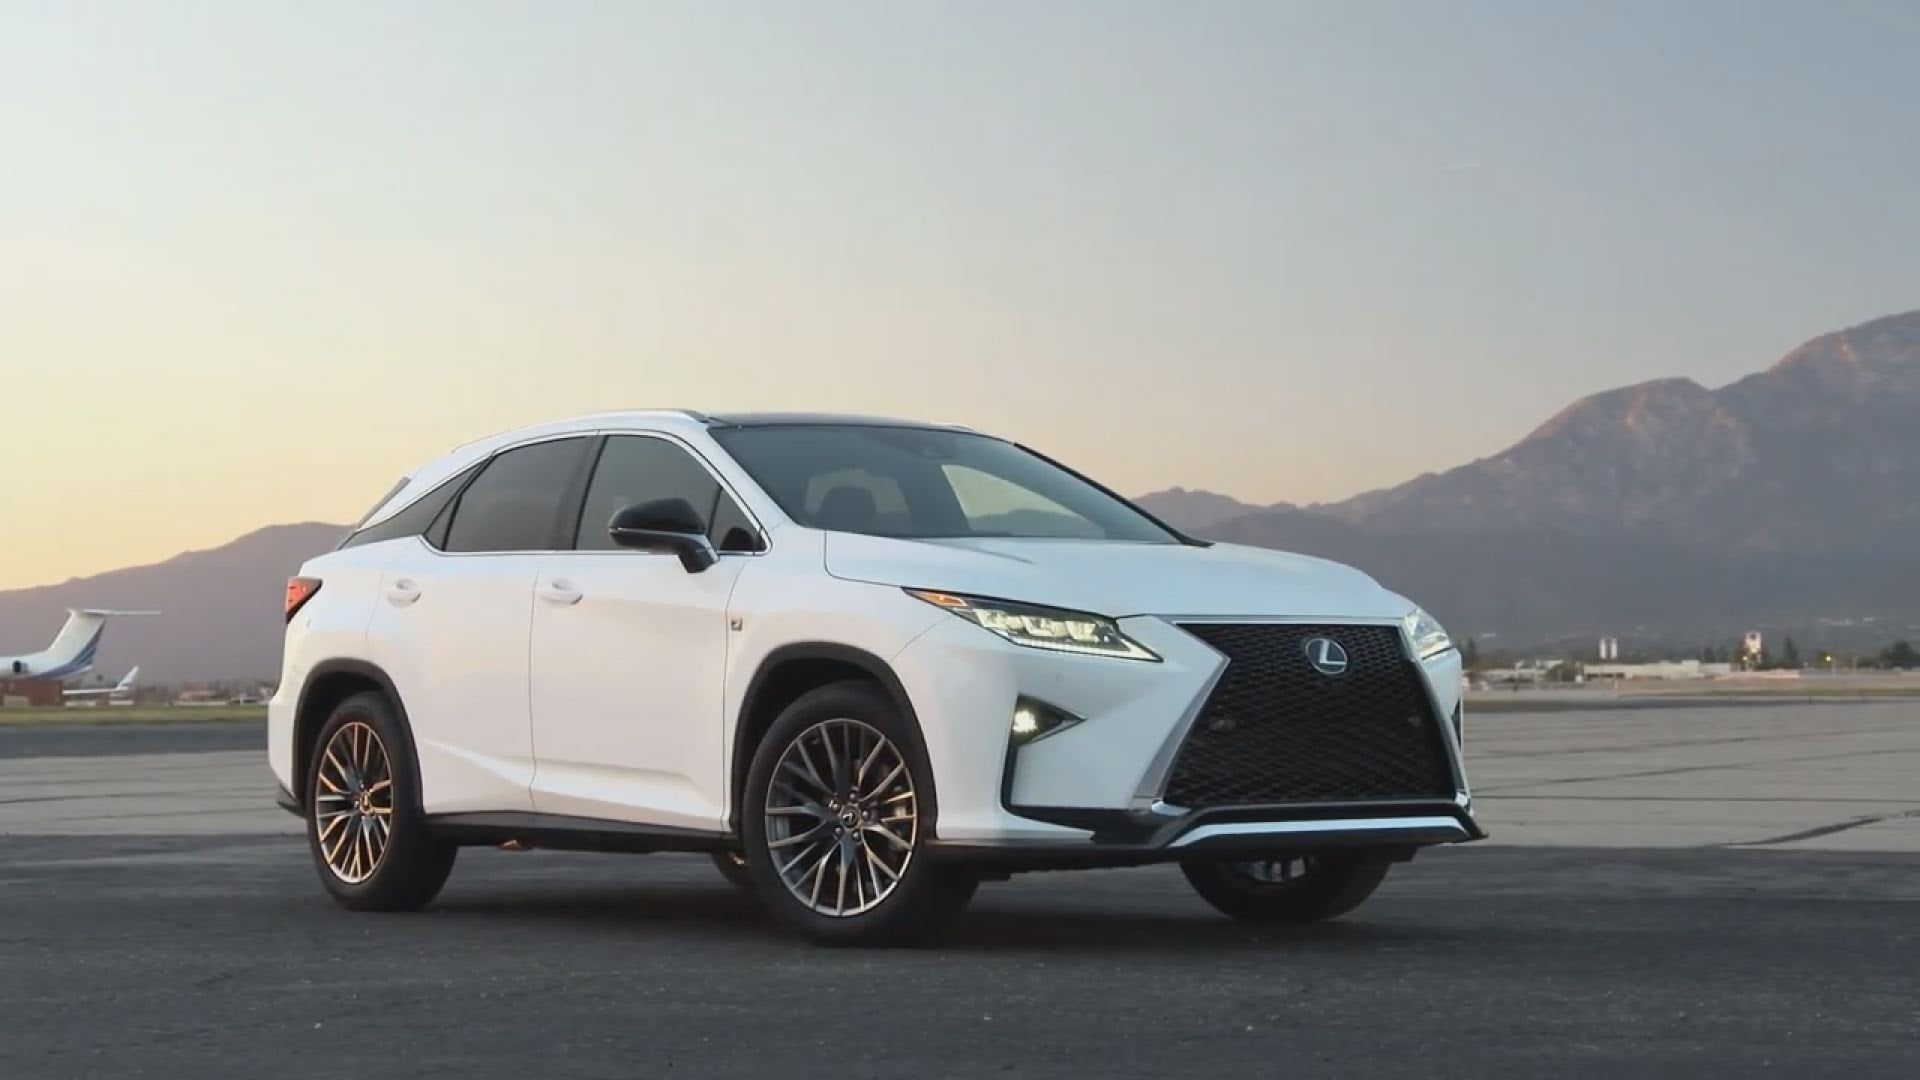 reviews photos suv lexus base features redesign price wheel photo drive rx front